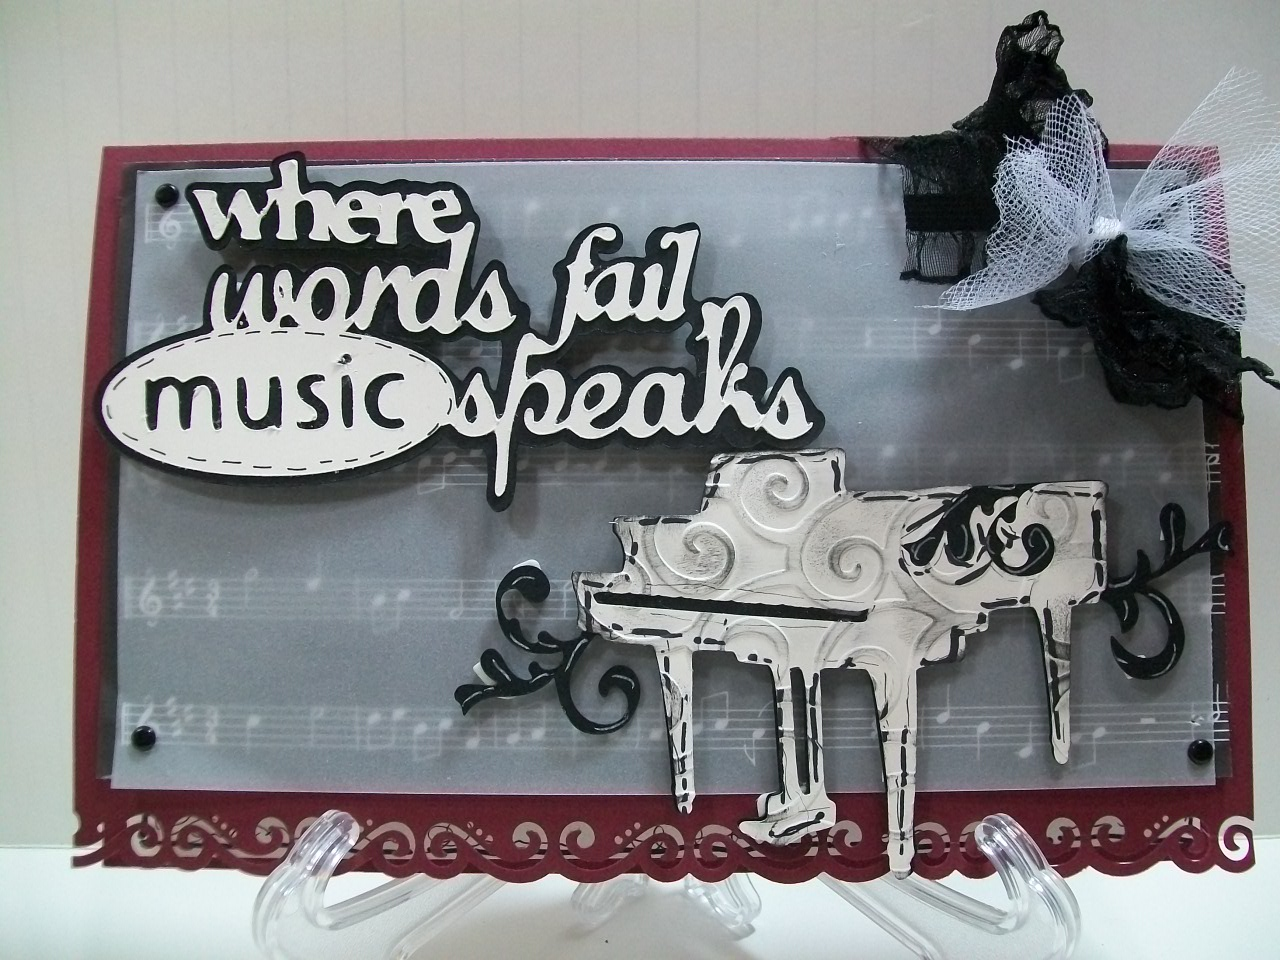 Scrapbook ideas using cricut - This Cartridge Is Perfect For Music Lovers And Will Make Some Beautiful Scrapbook Pages And Or Cards For That Special Person In Your Life